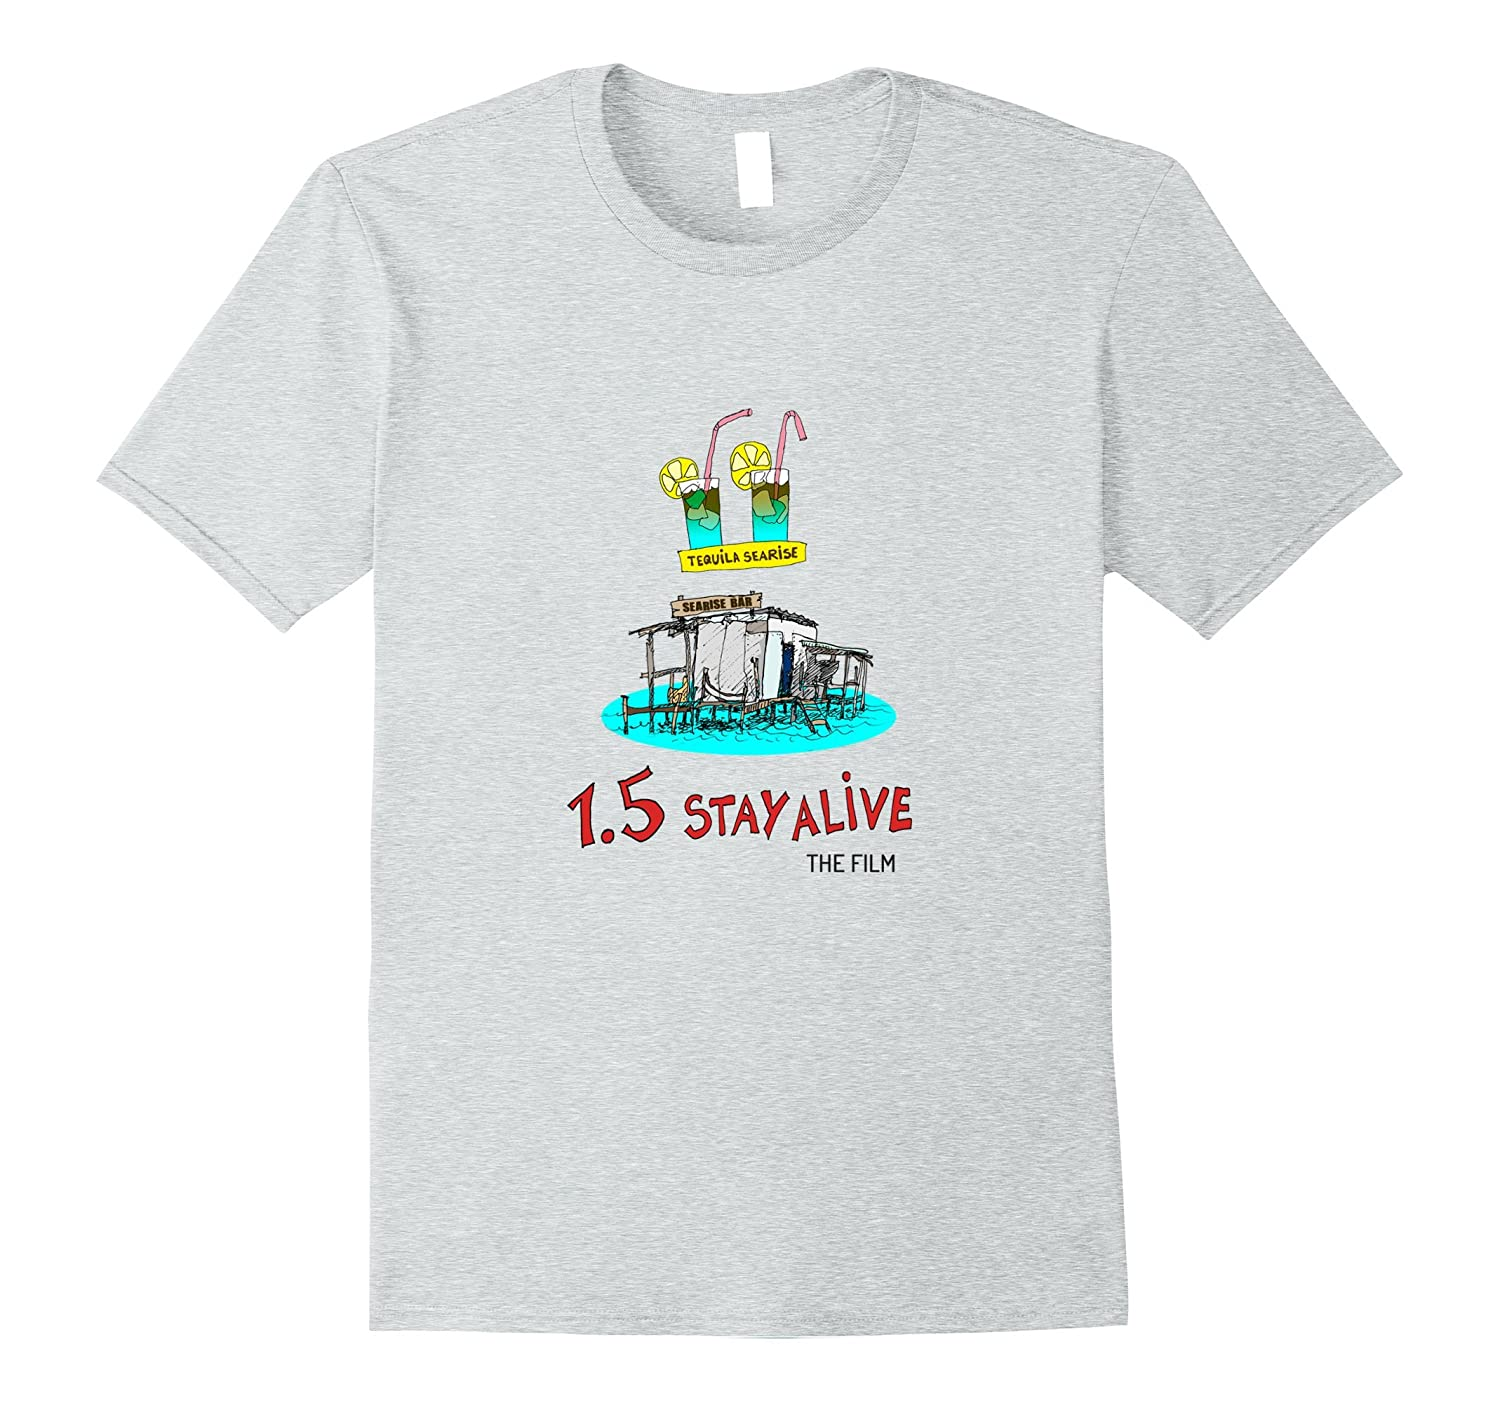 15 Stay Alive - Sea Level Rise in the Caribbean Tshirt-TJ